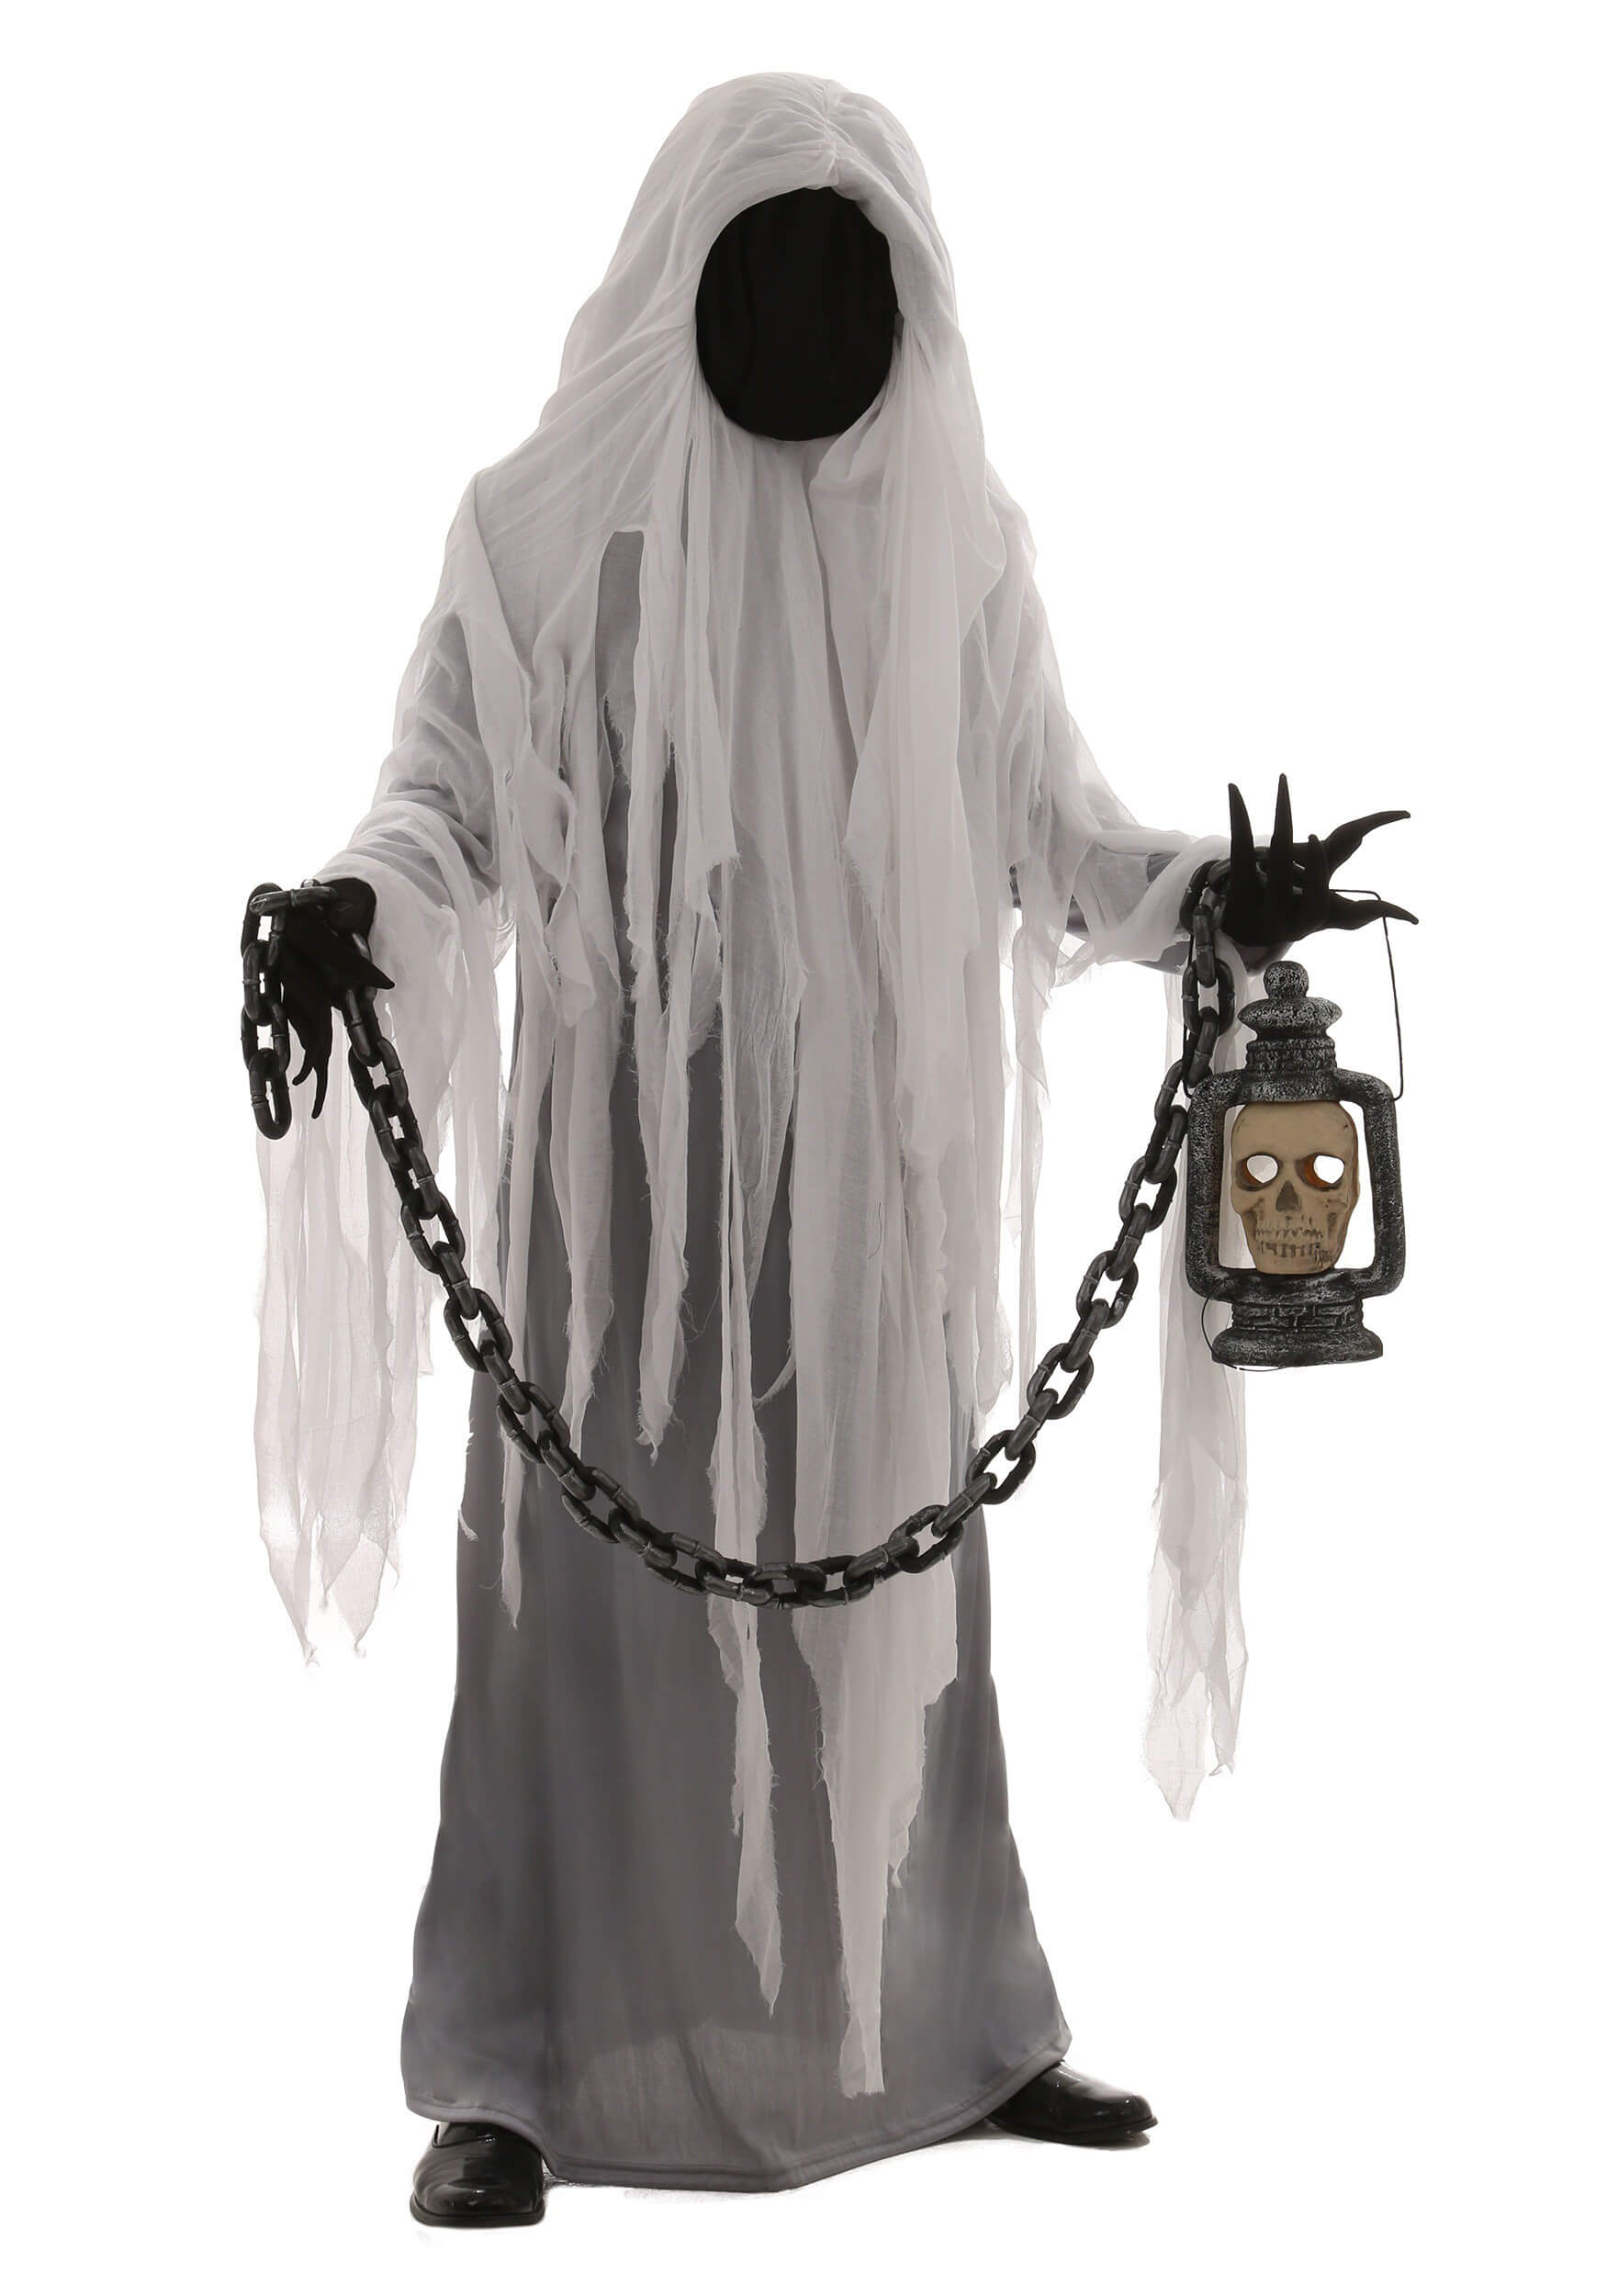 spooky ghost costume for halloween